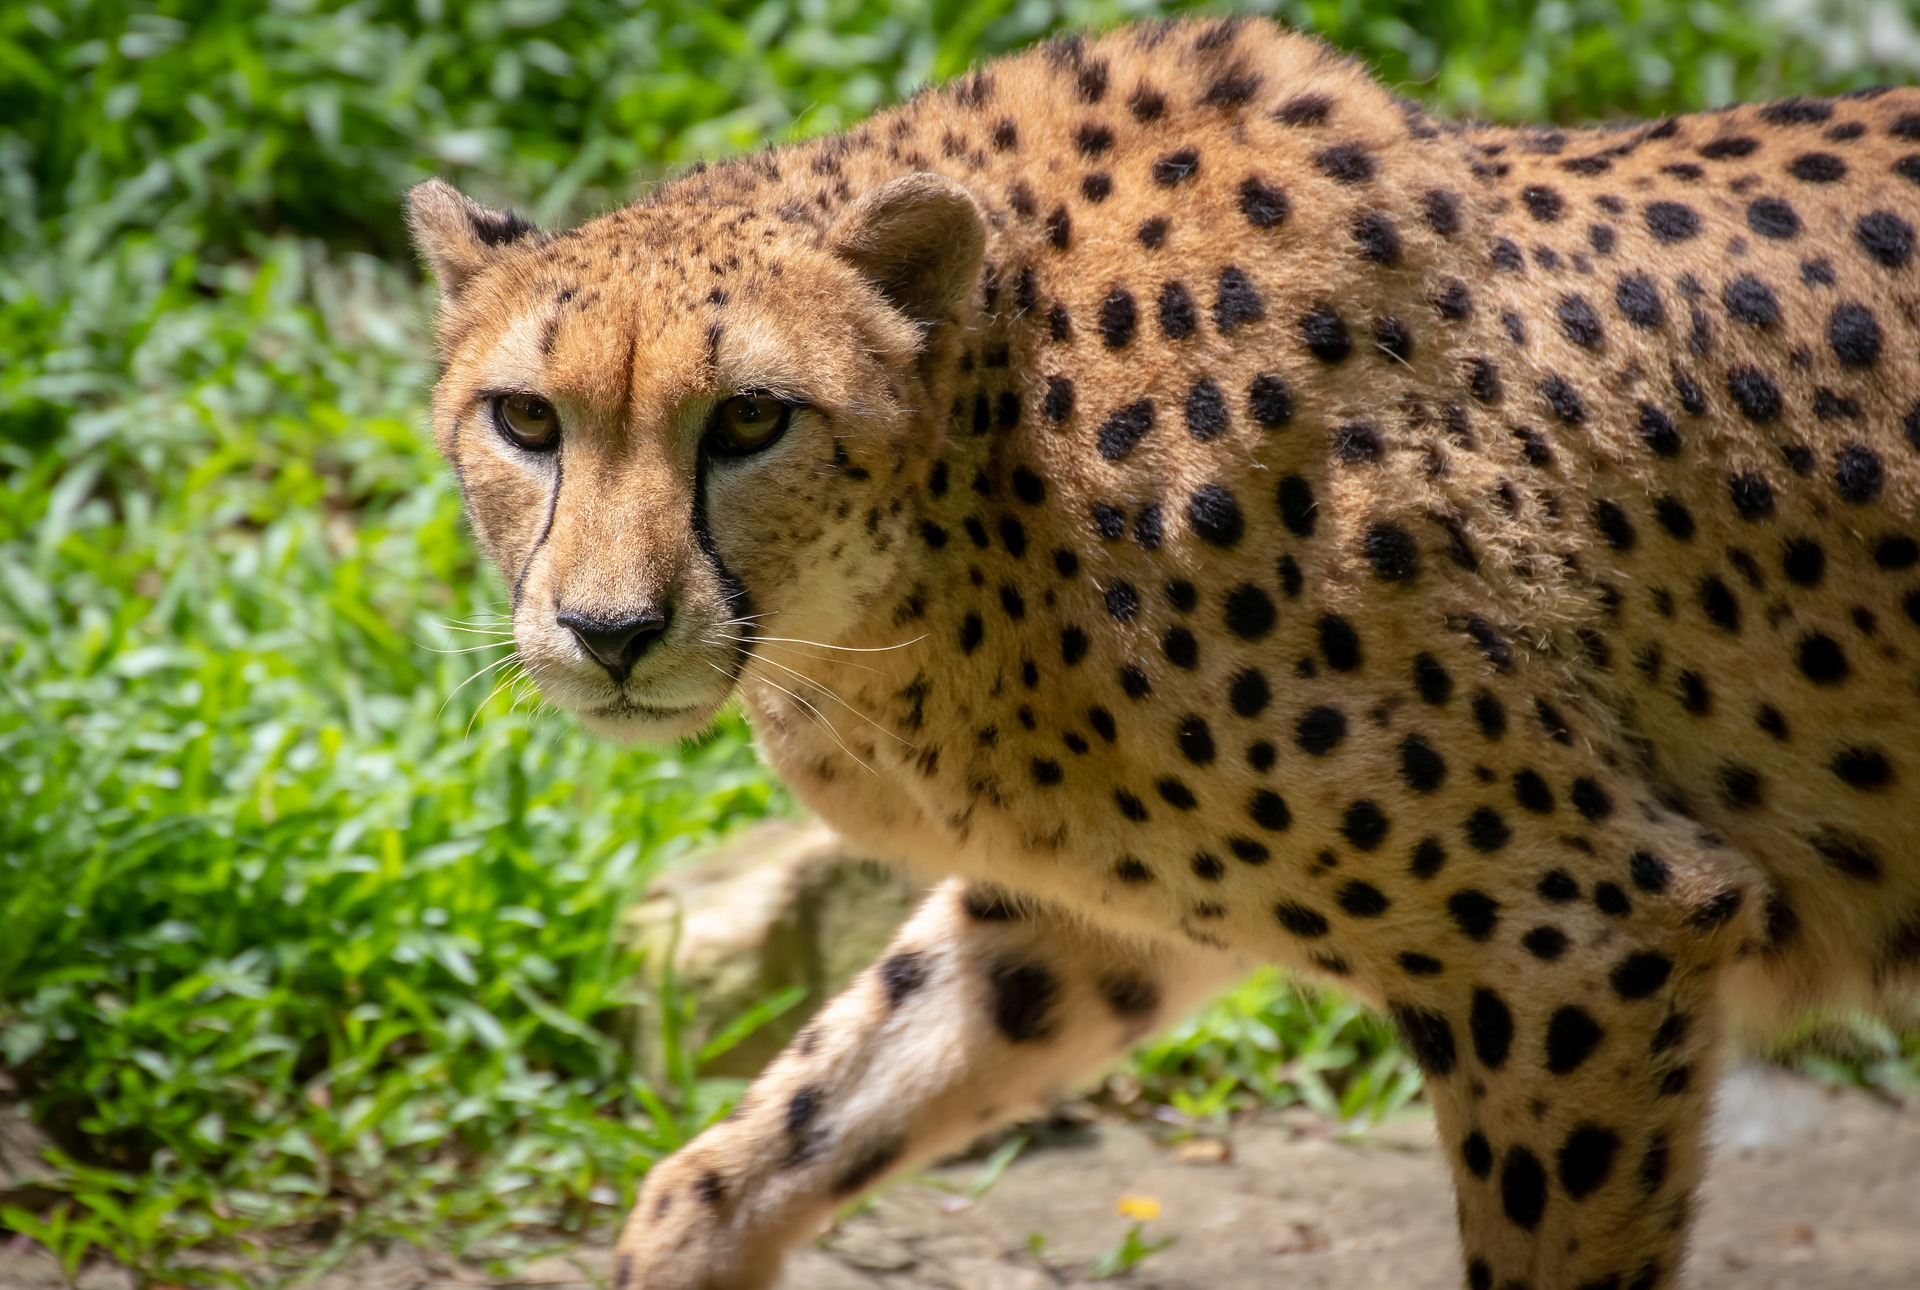 Photo_caption_Cheetah-_CC_via_Pixabay